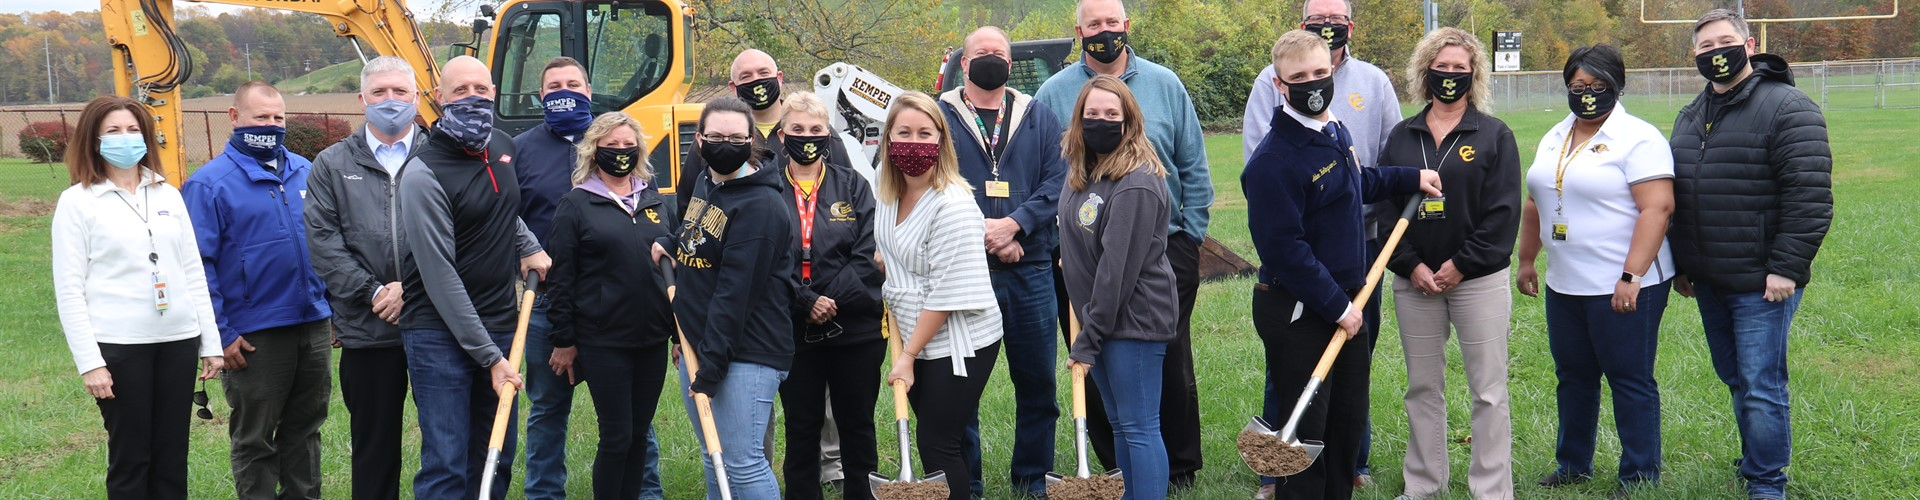 Group of masked people at groundbreaking. Five individuals hold shovels of dirt with row of people behind. Construction equipment in background.